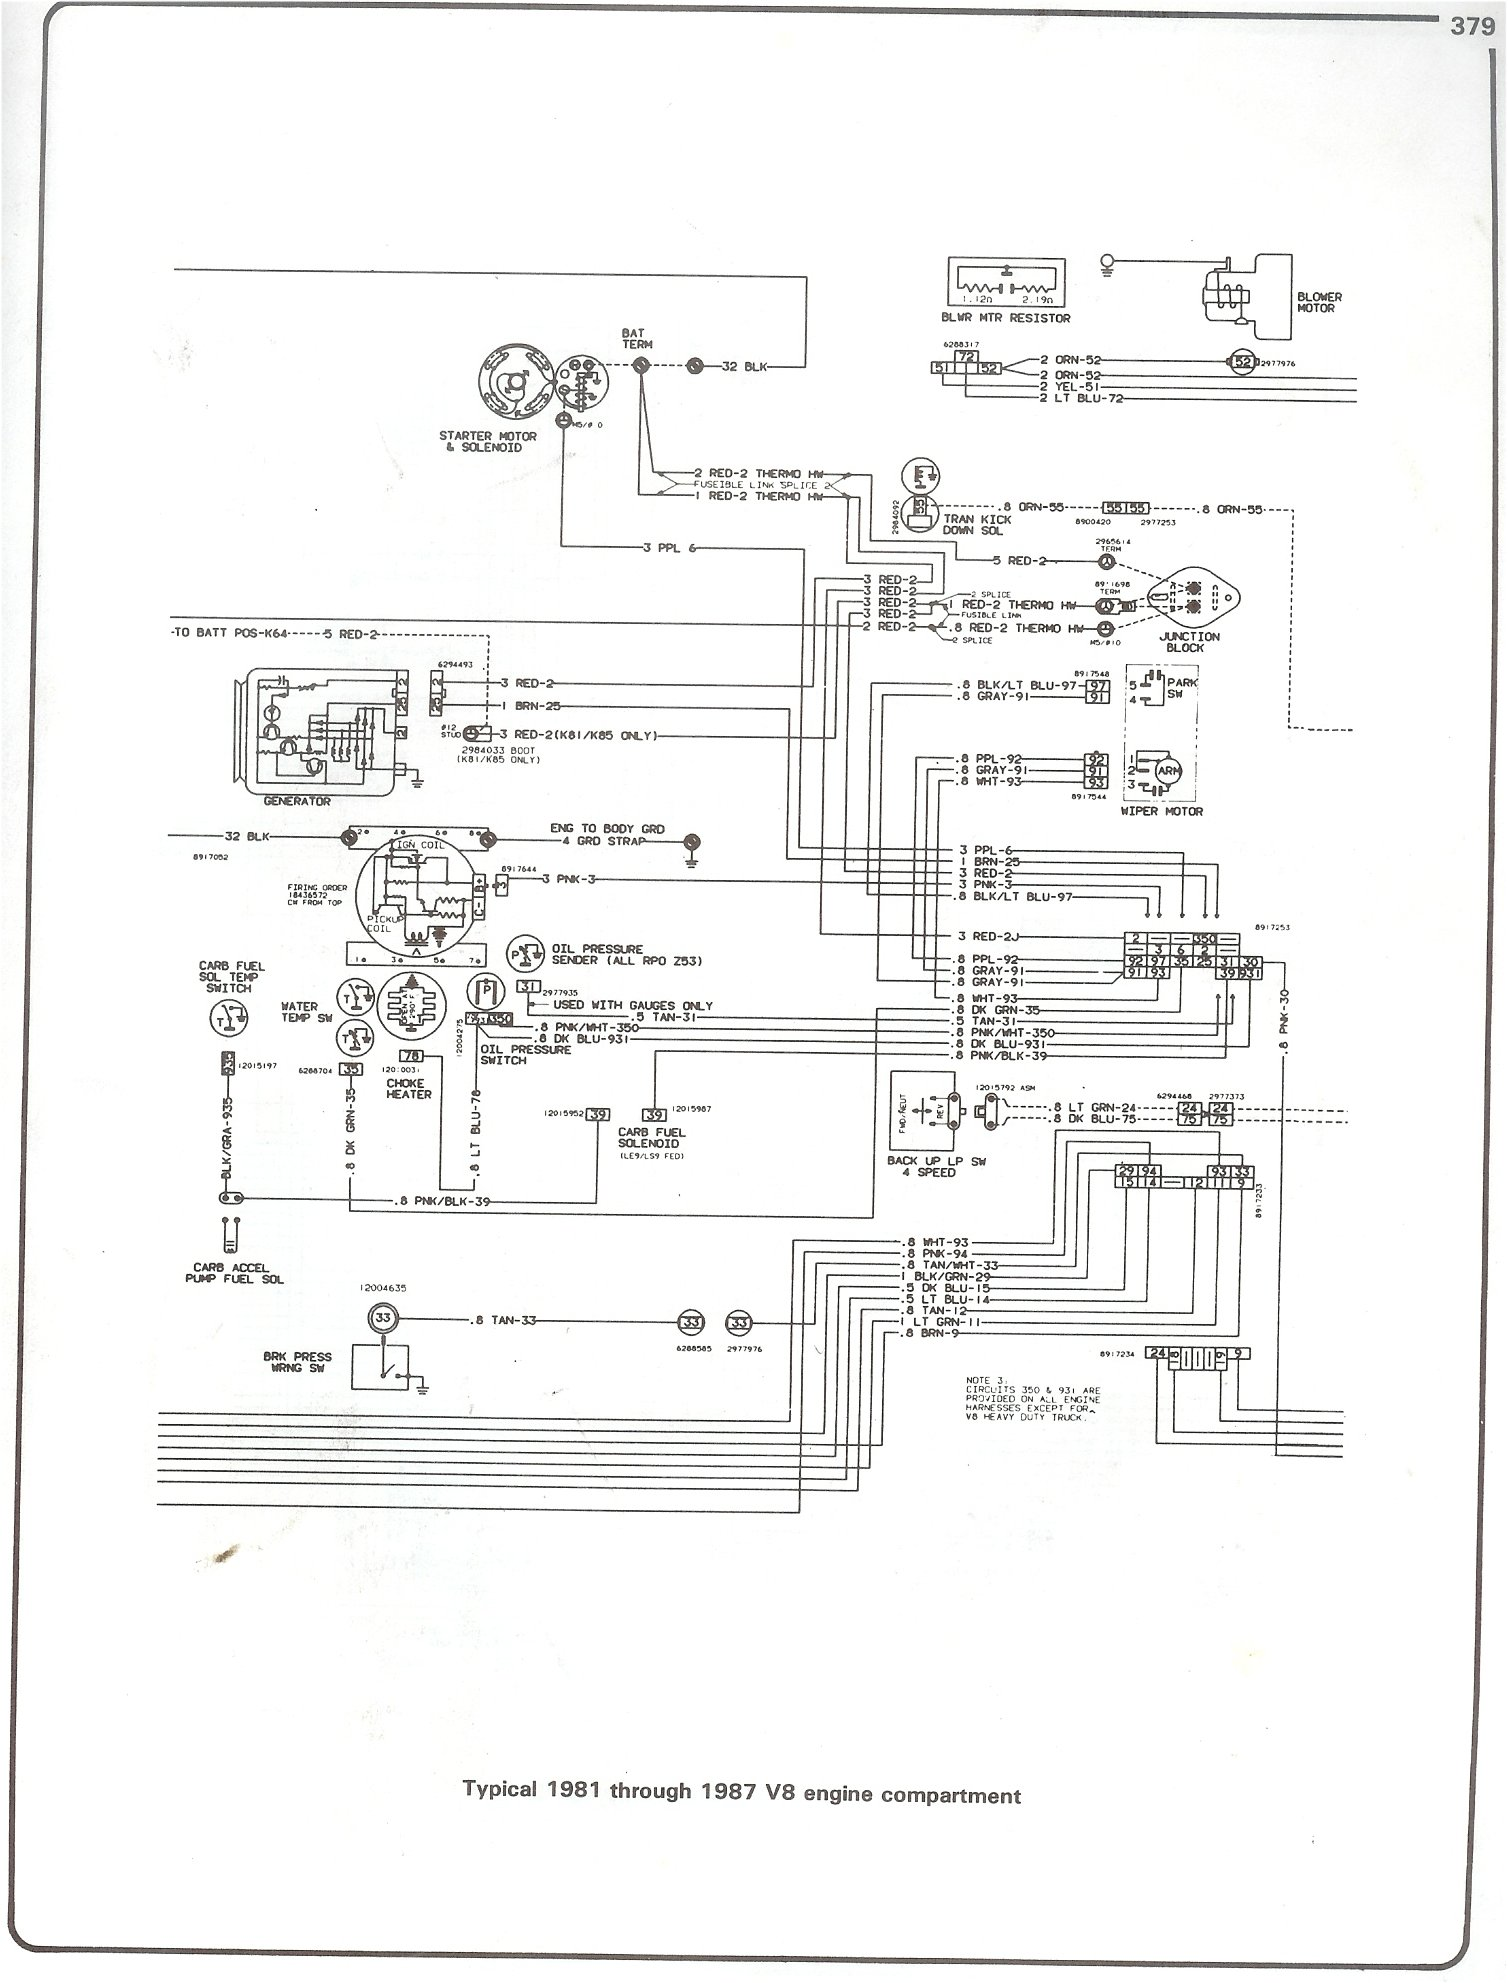 81 87_V8_engine complete 73 87 wiring diagrams 1986 chevy truck wiring harness at mifinder.co